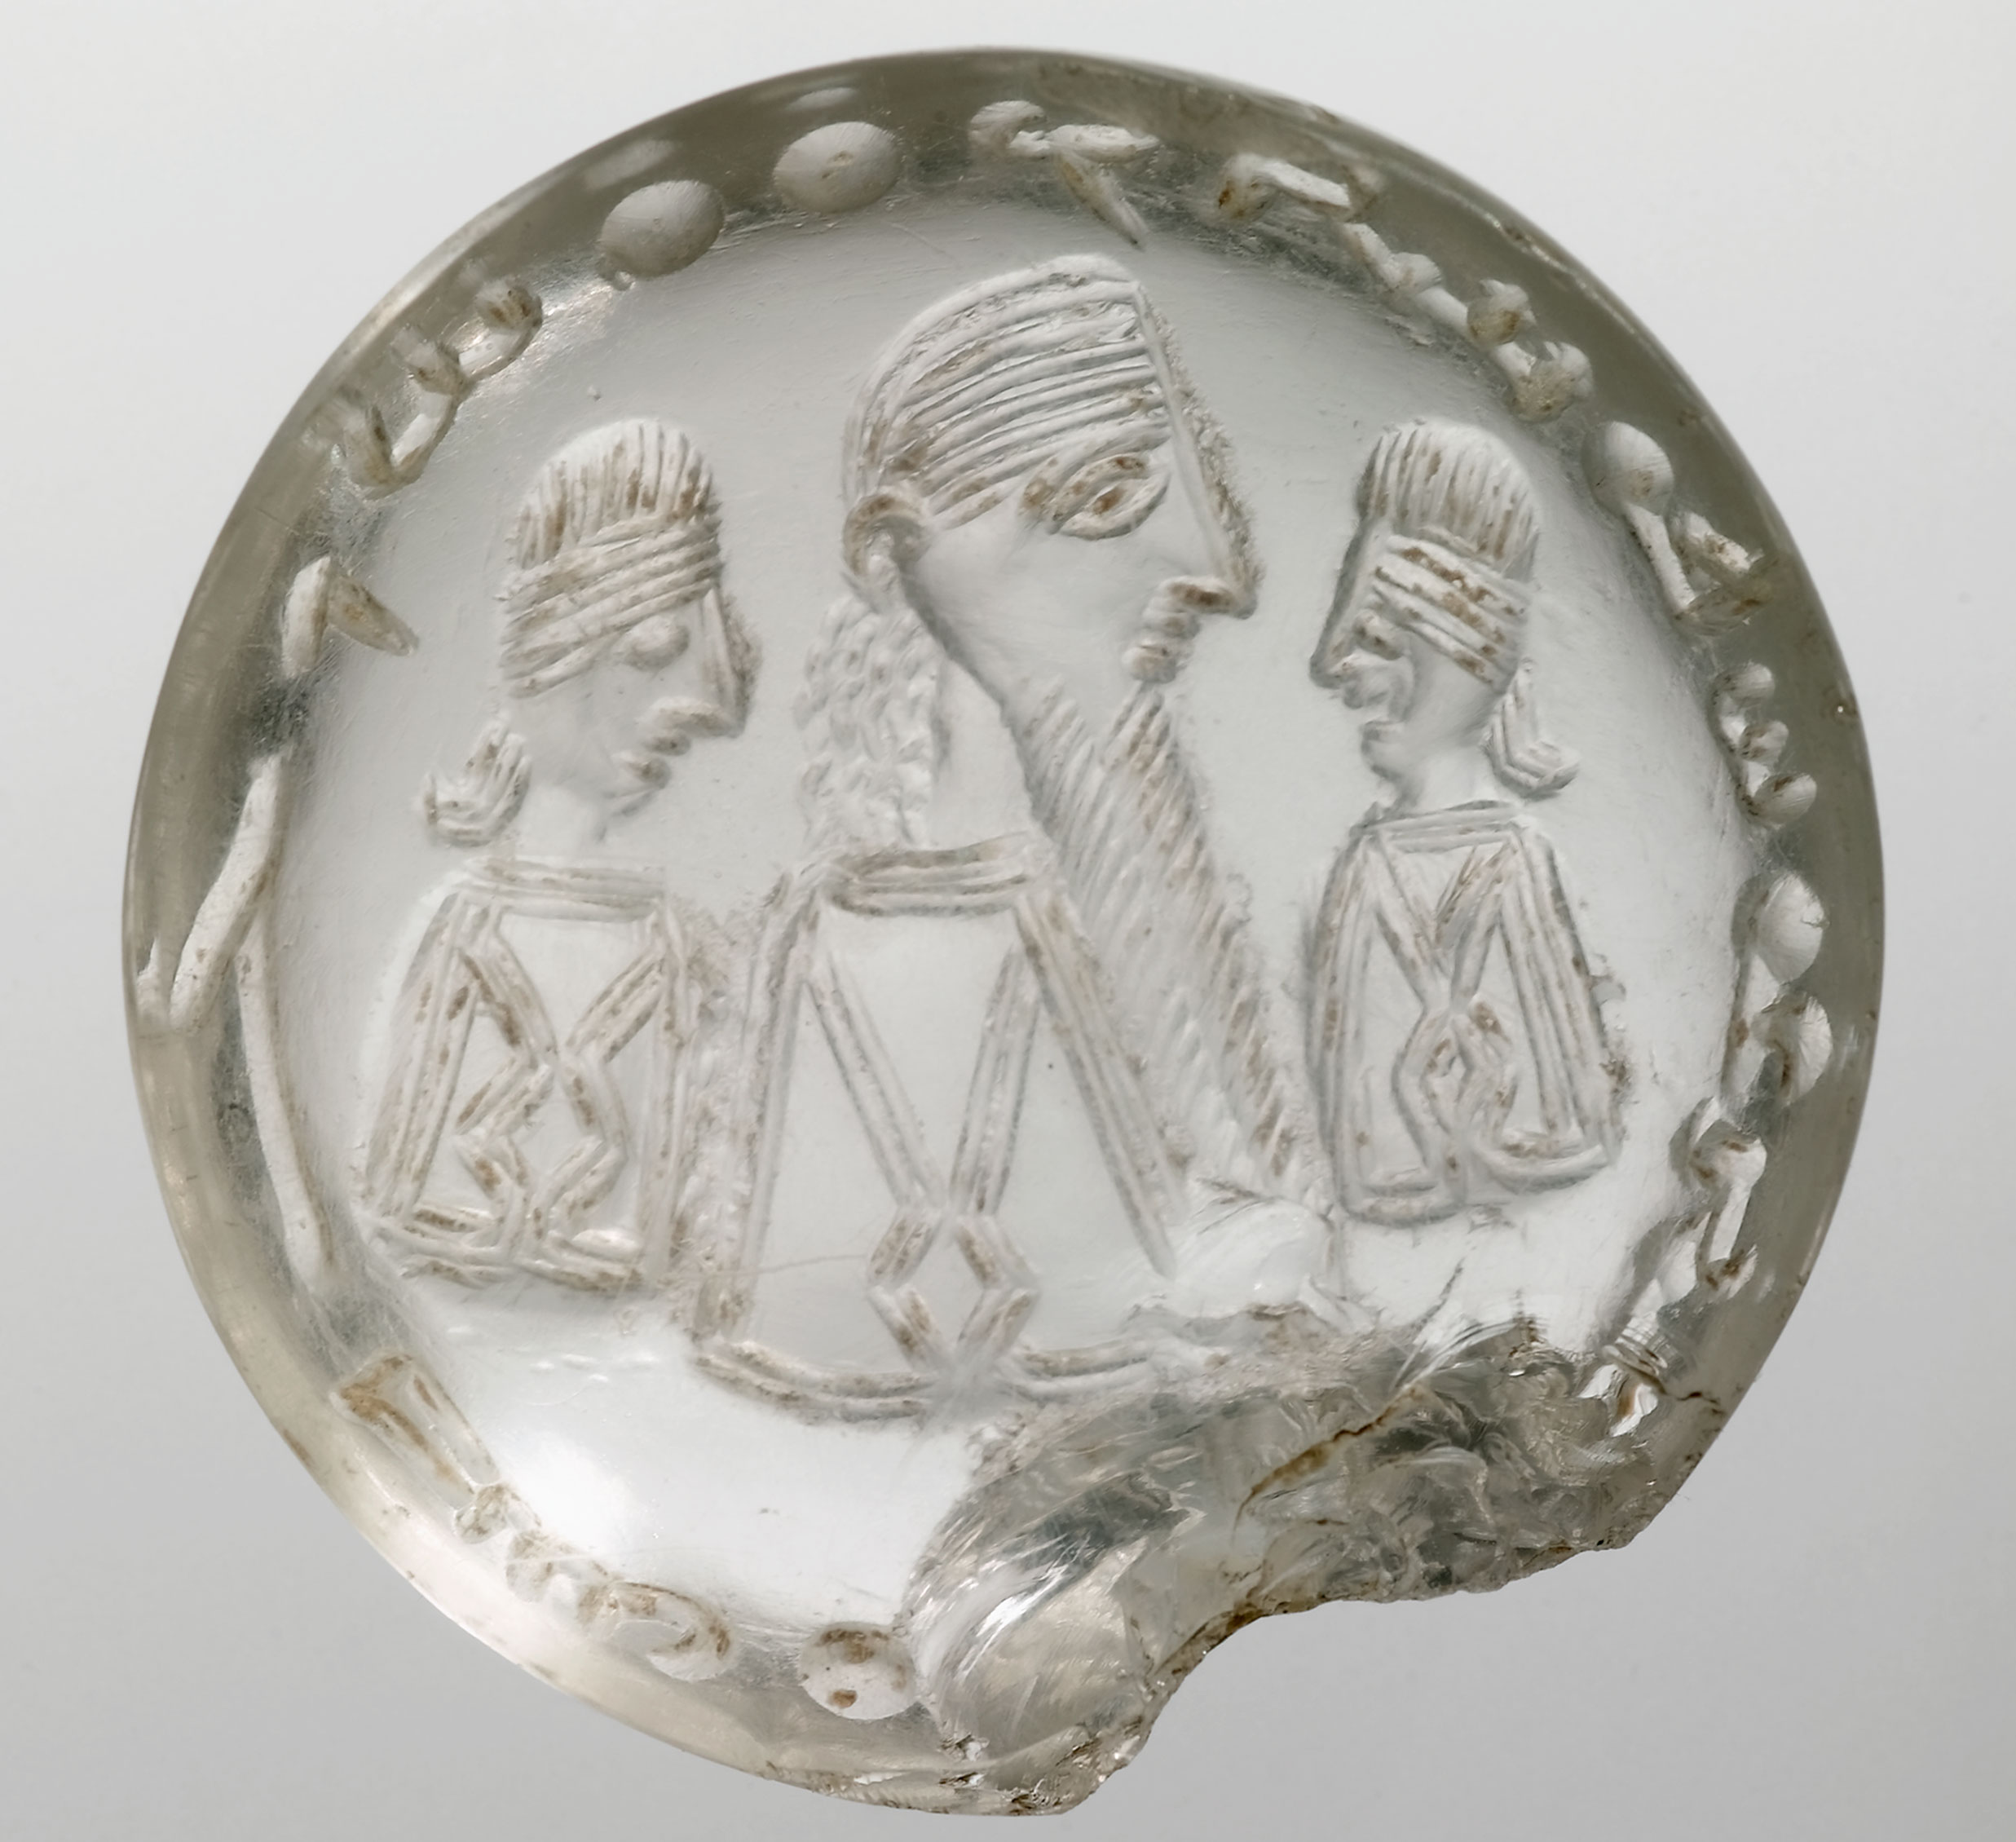 "'The Crystal Seal of Mani' (possibly 3rd cent. CE). The Syriac text reads: ""Mani, the Apostle of Jesus Christ"". Bibliothèque nationale de France."